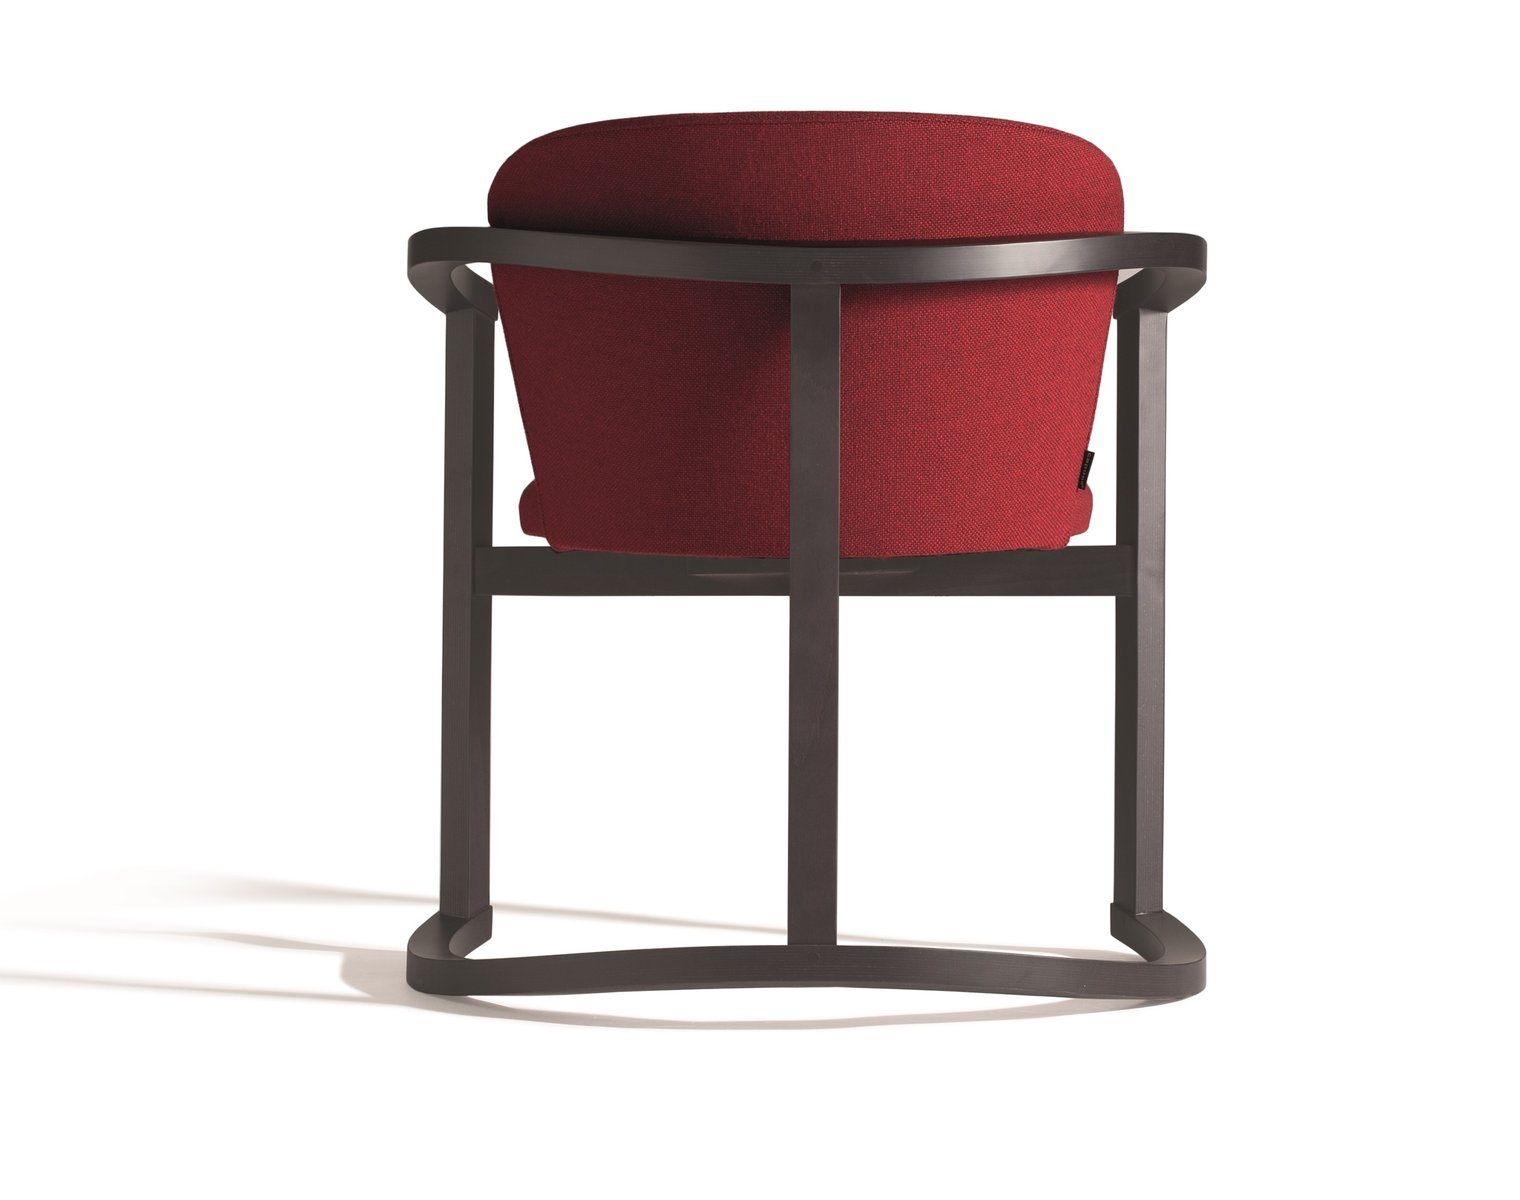 384 Stir Chair By Kazuko Okamoto For Capdell For Sale At Pamono